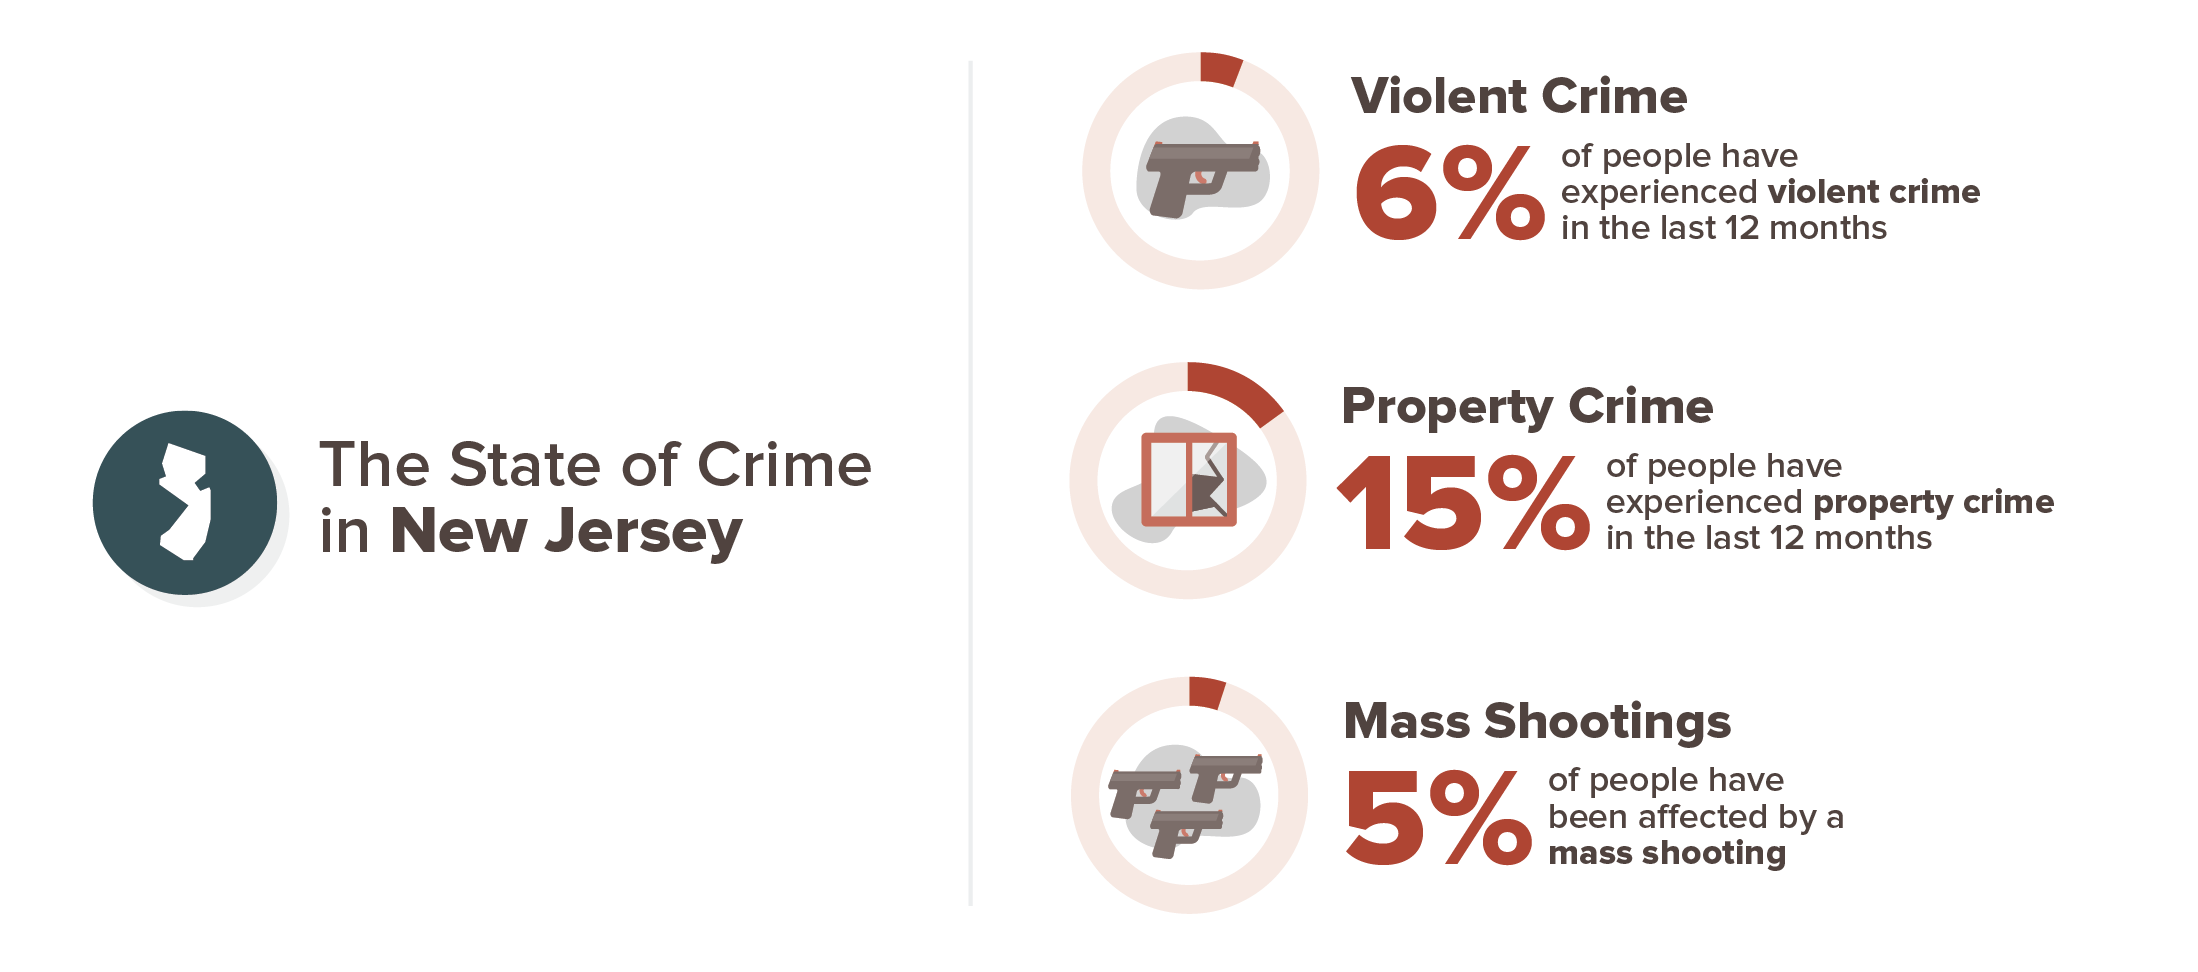 6 percent have experienced violent crime, 15 percent have experienced property crime, 5 percent have been affected by a mass shooting